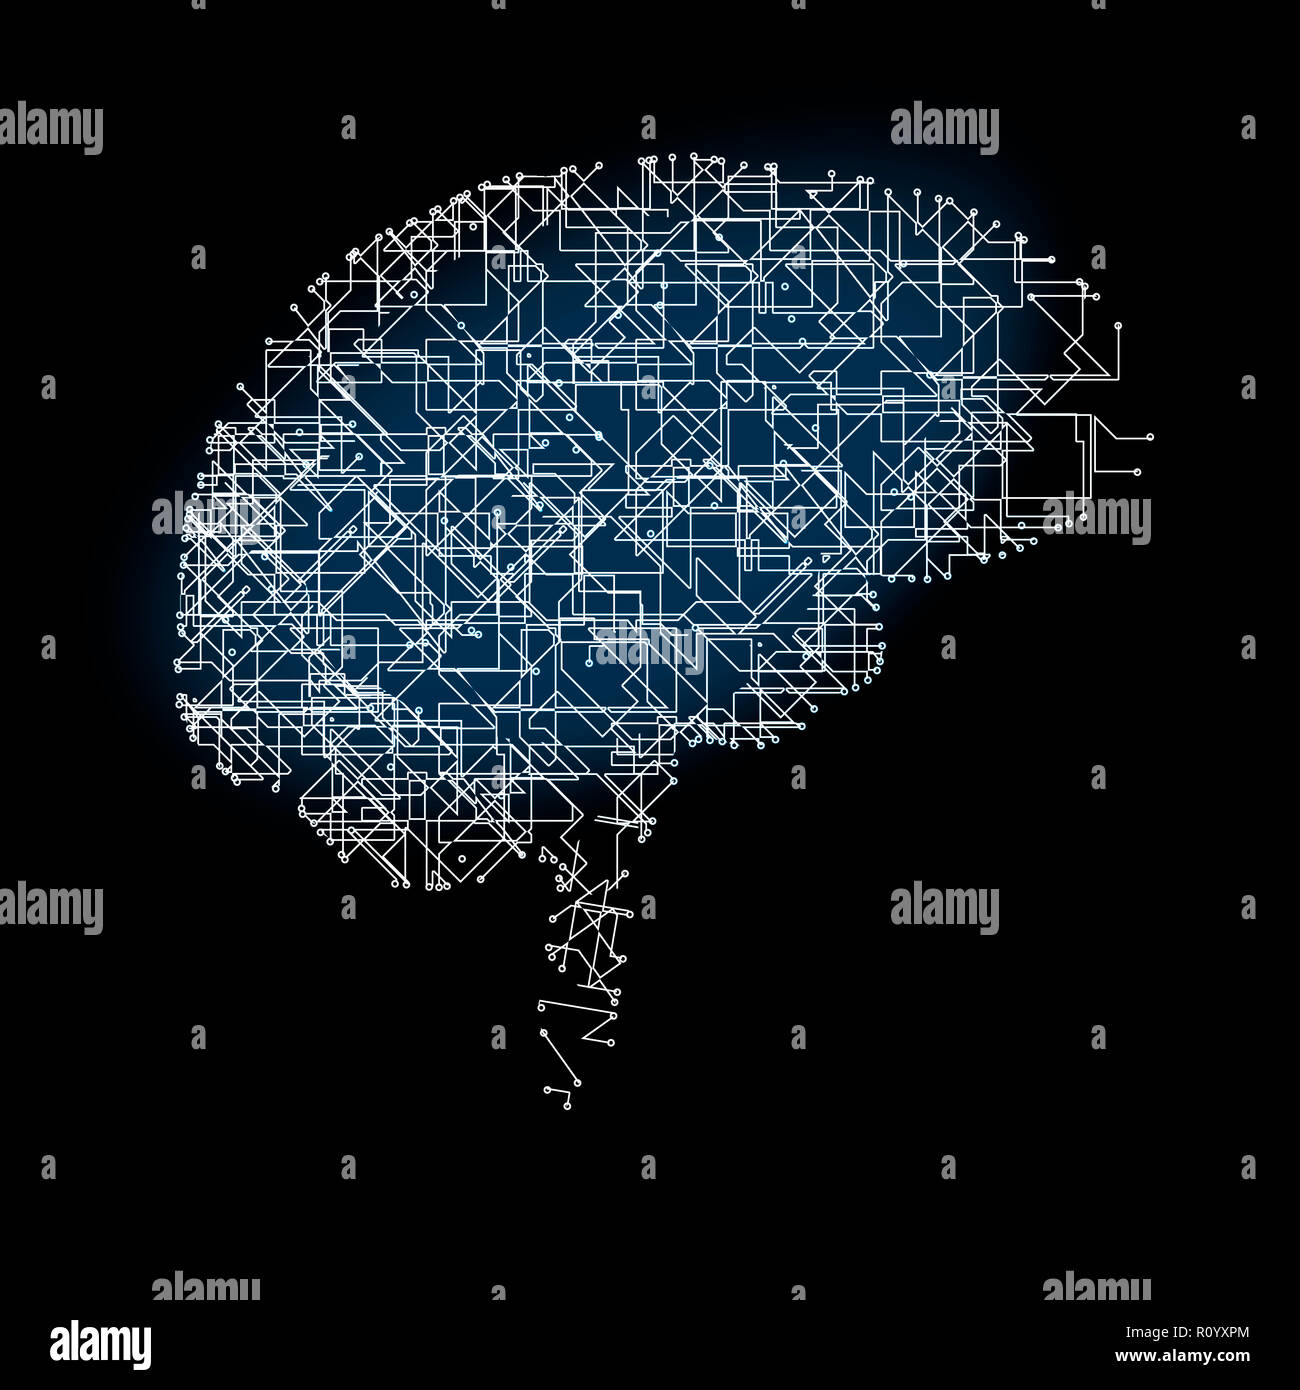 Digital image of human brain anatomy of artificial networks against black background - Stock Image